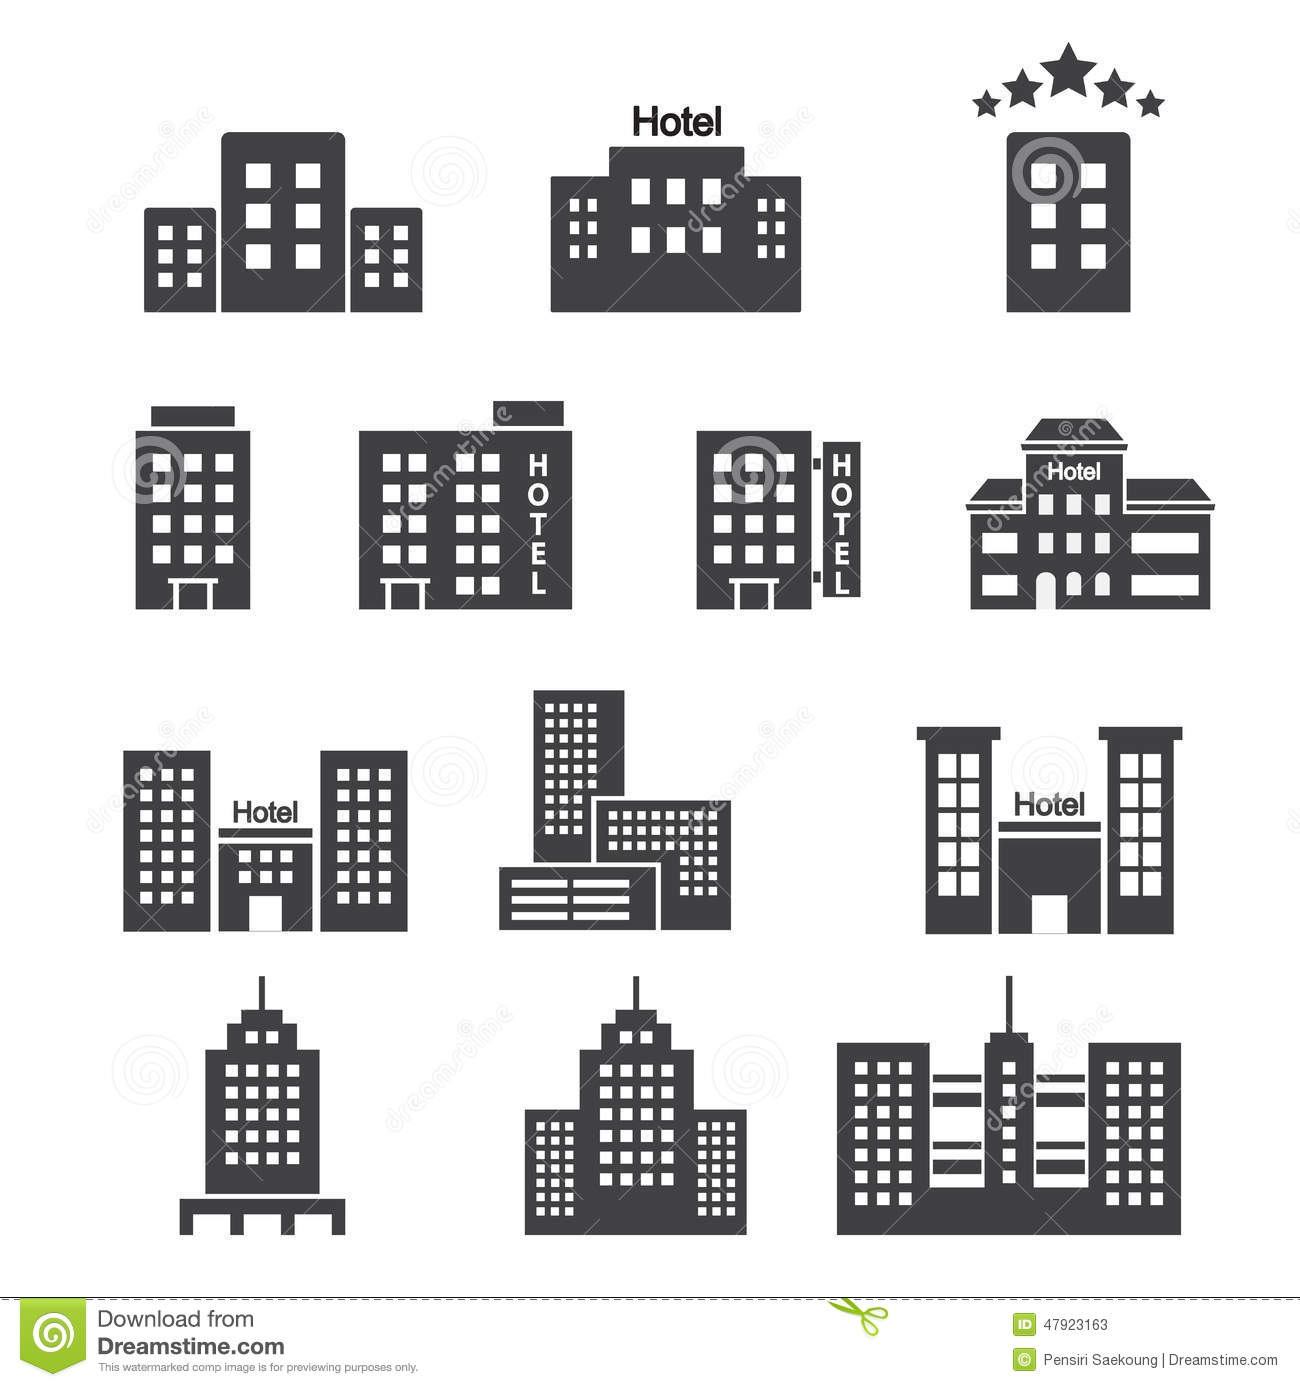 Garage door clip art - Hotel Icon Stock Vector Image Of High Business Cities